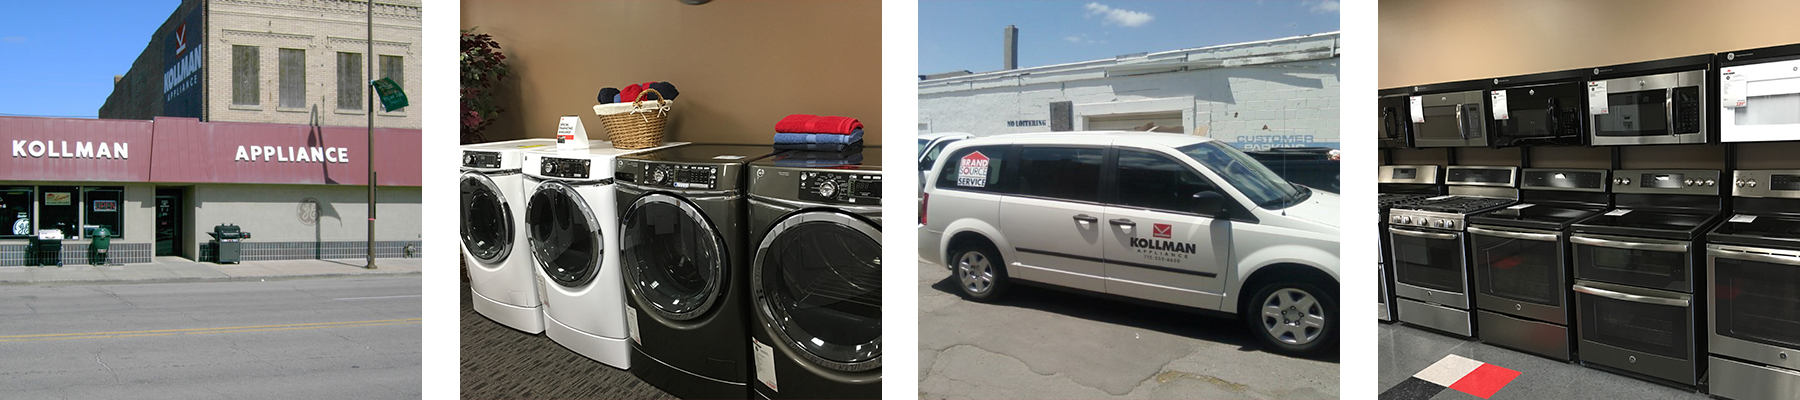 Ge Appliance Service Repair And Appliance Parts In South